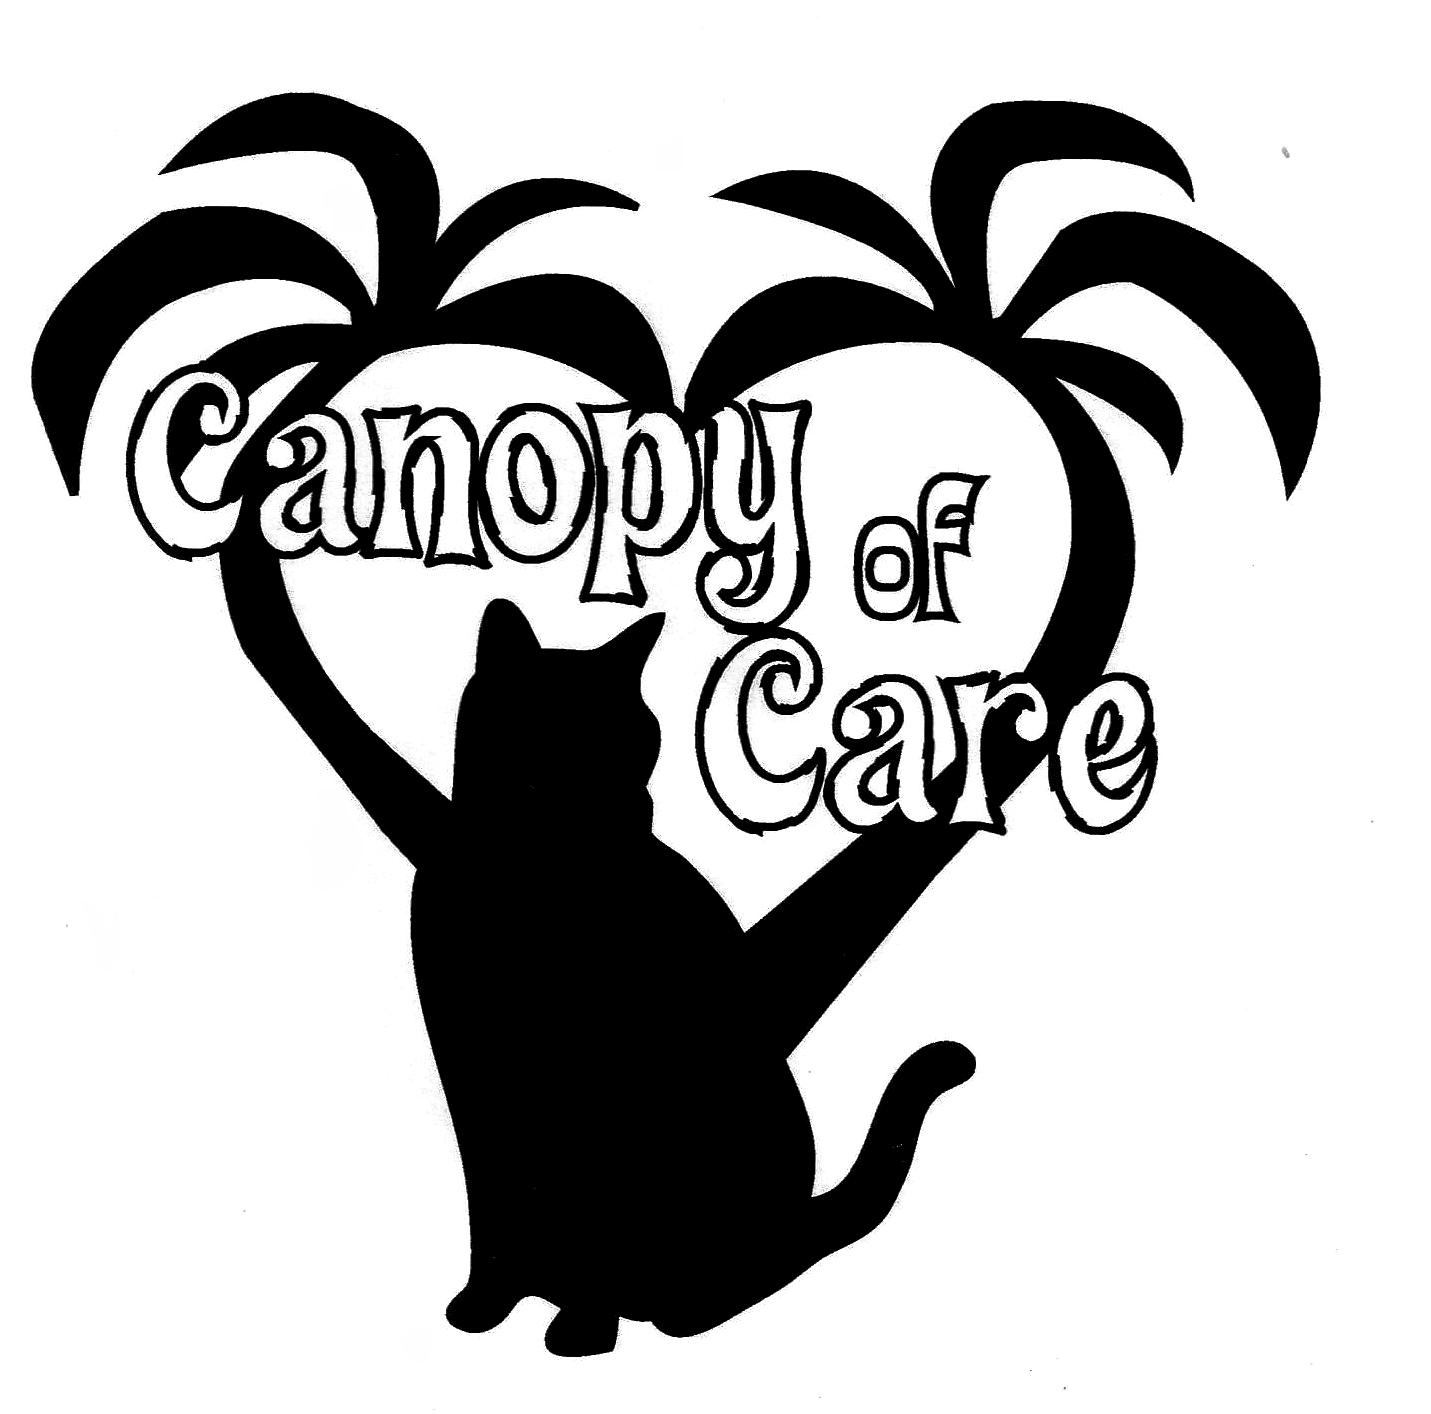 Feline Canopy of Care, Inc.